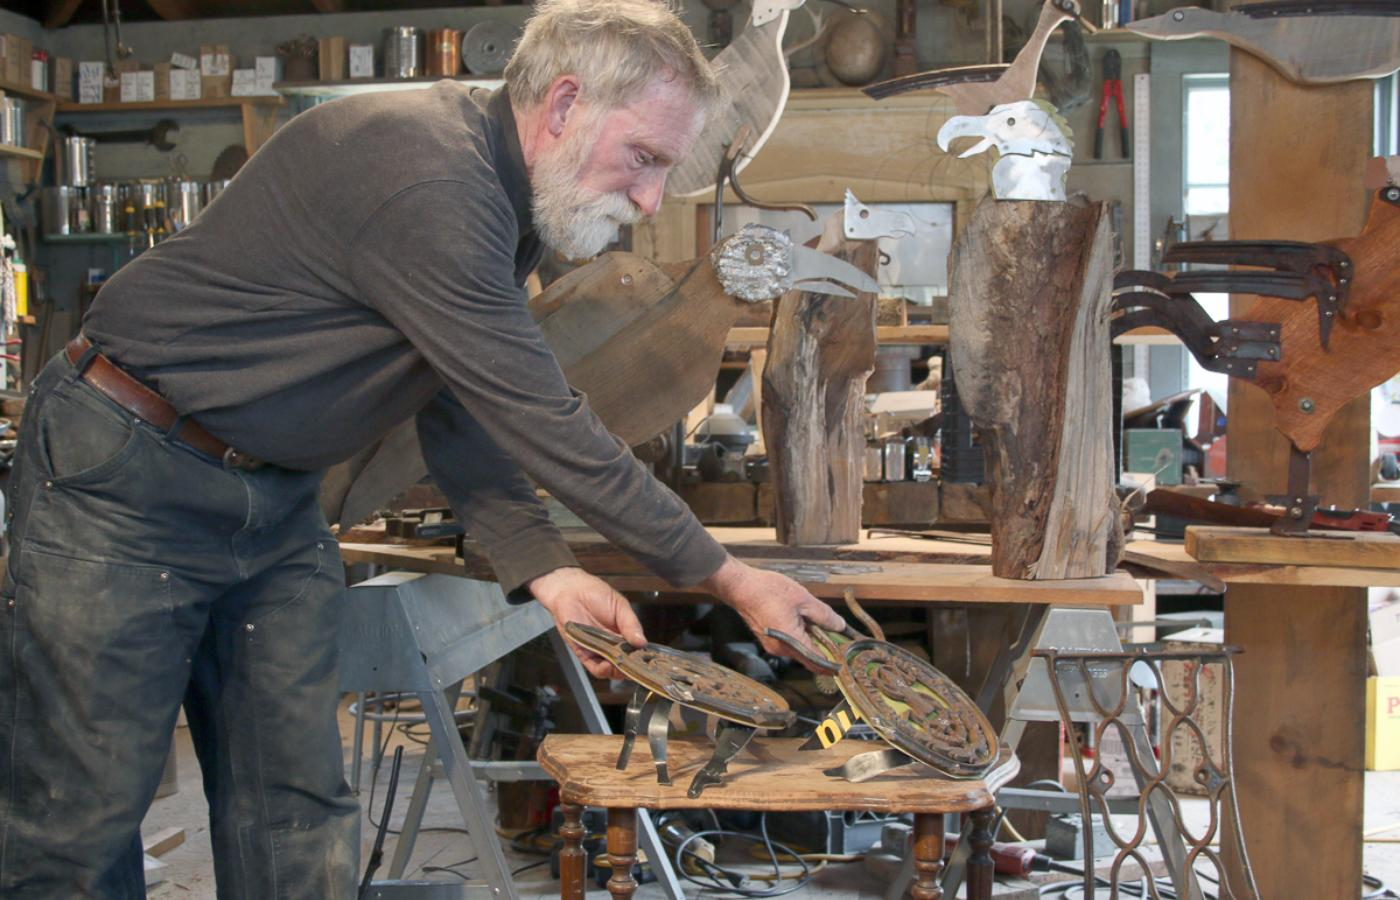 Deer Isle Sculptor Creates Art From Found Objects Antique